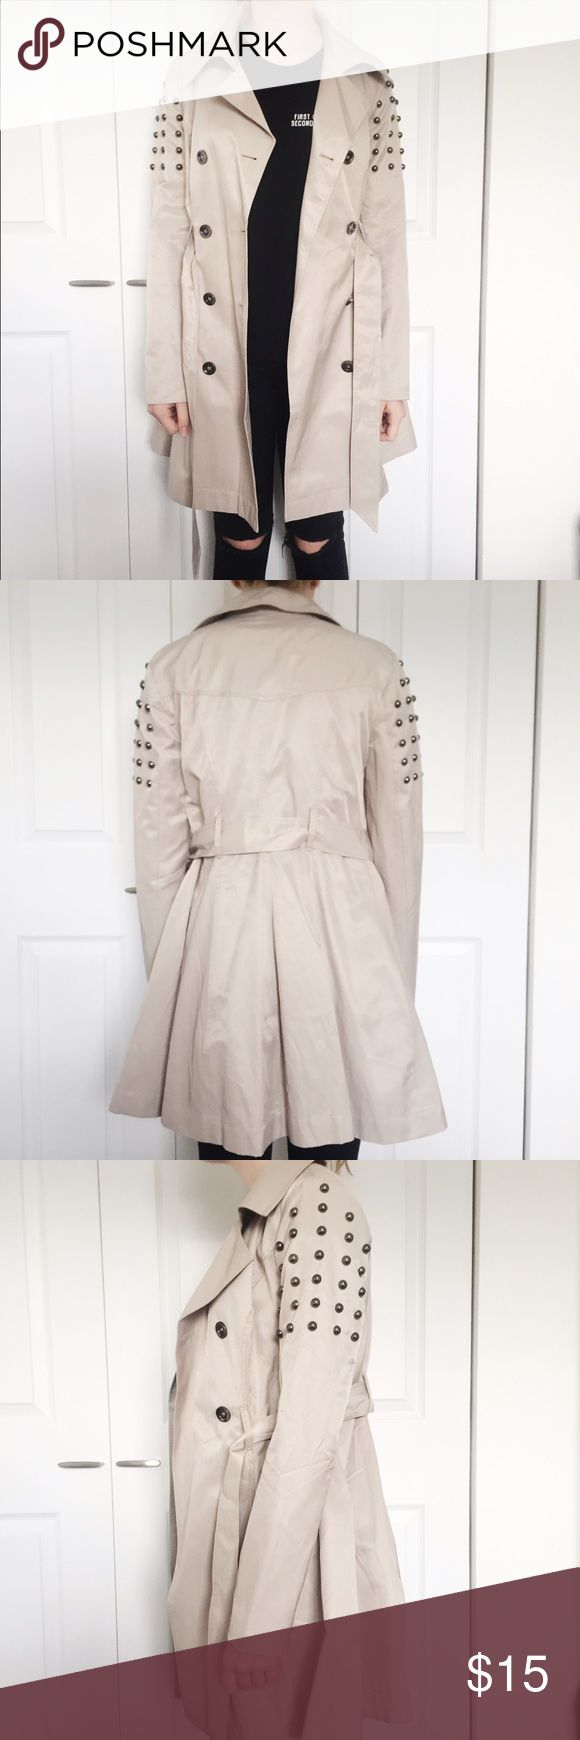 Pretty Little Liars Aeropostale Studded Trenchcoat Beige trench coat from Aeropostale's Pretty Little Liars collection. Barely worn, size small, includes extra buttons Aeropostale Jackets & Coats Trench Coats